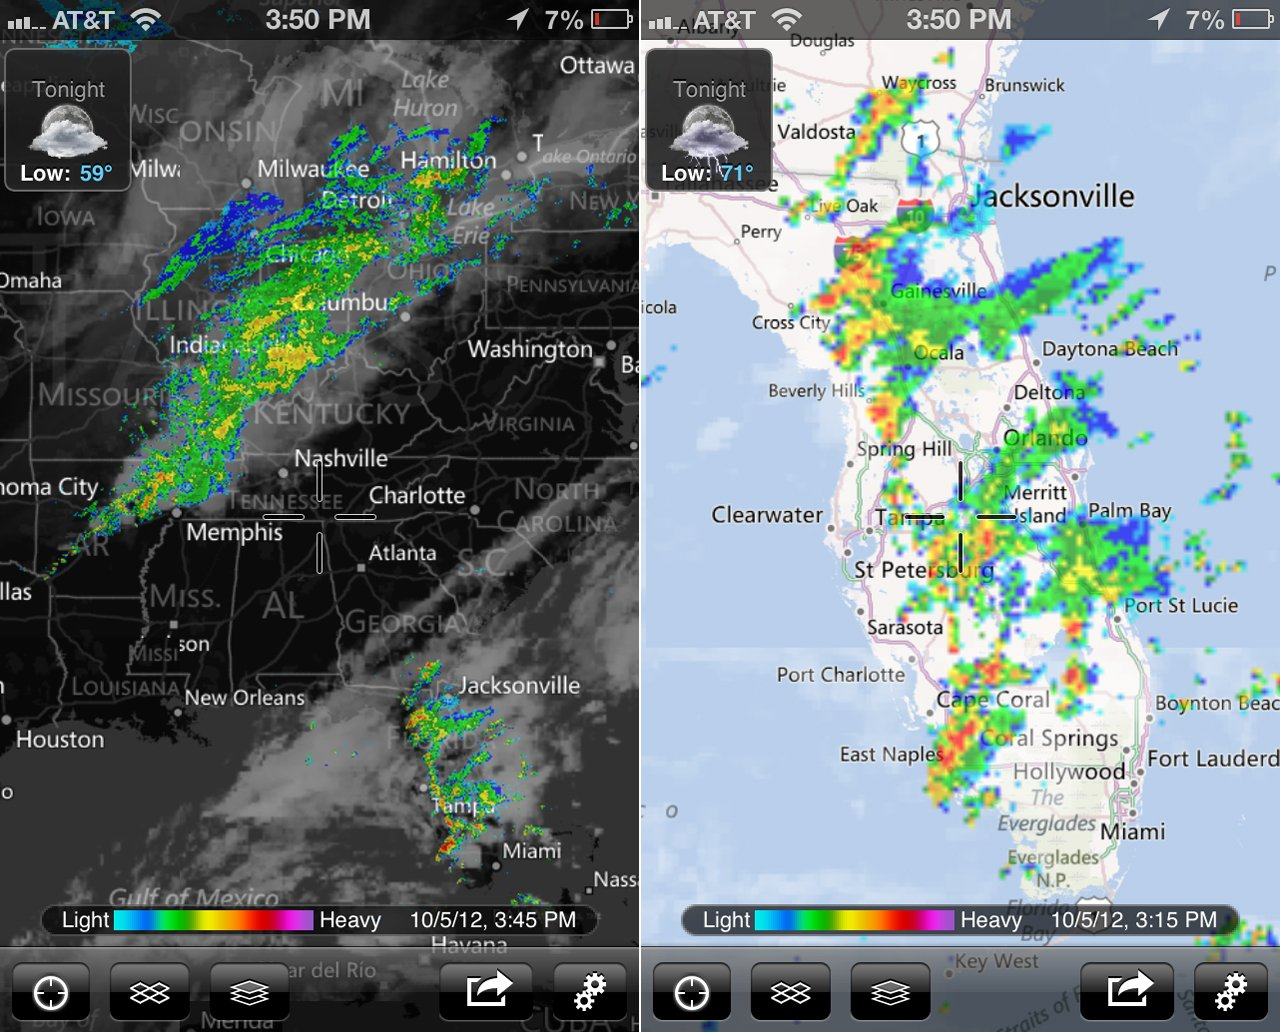 radar app for iphone myradar weather radar gains new map data and iphone 5 support 7833